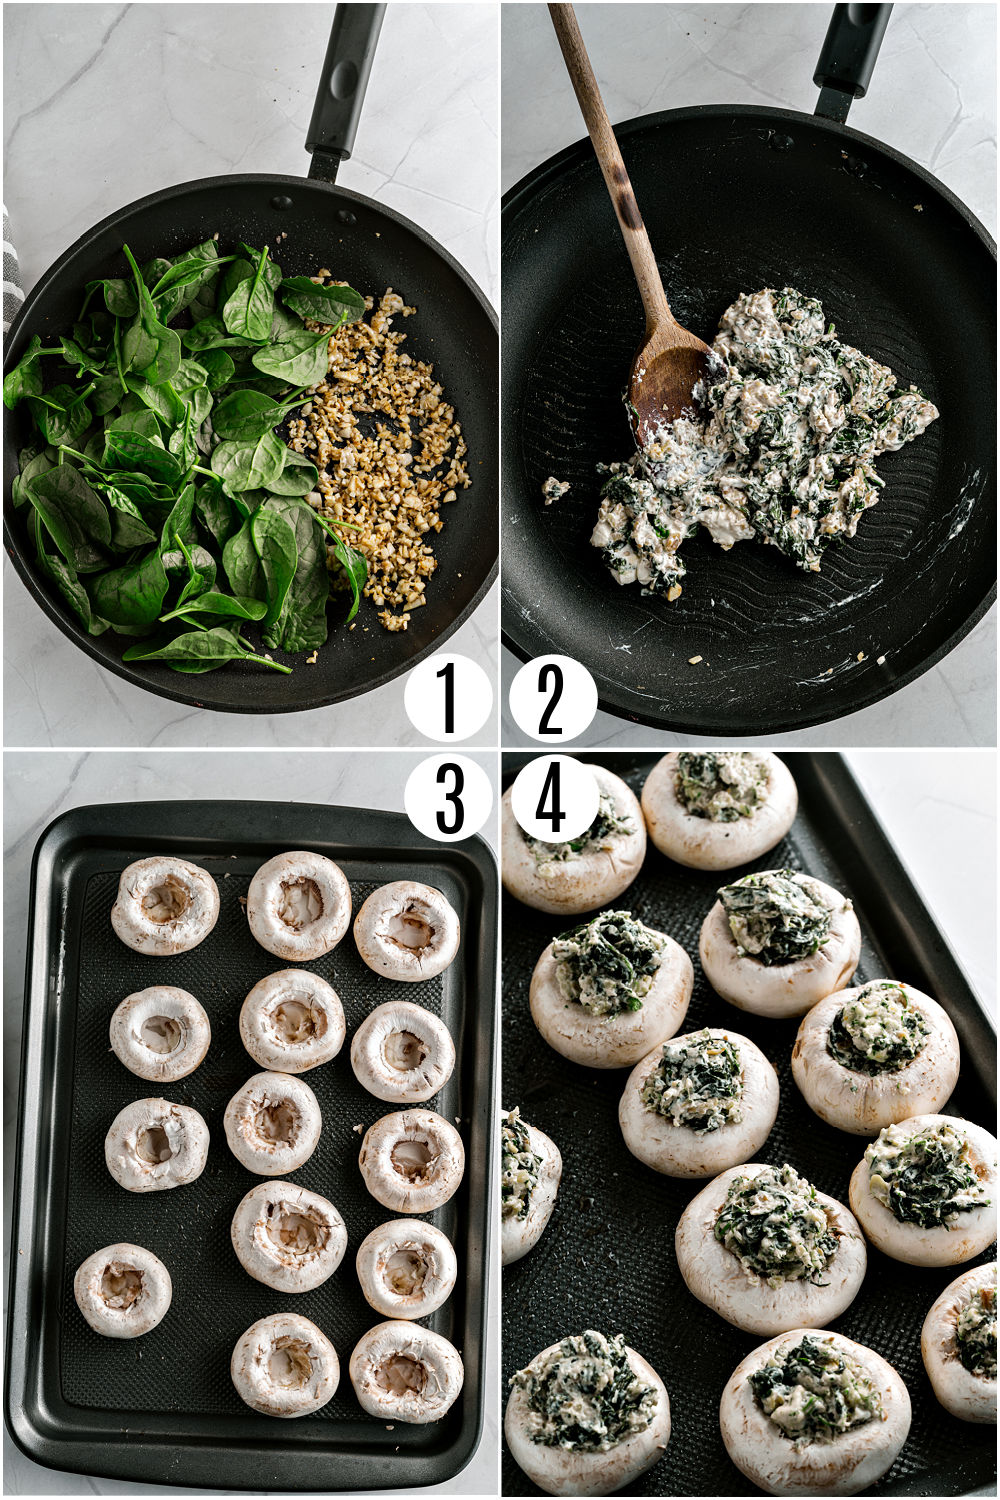 Step by step photos showing how to make stuffed mushrooms.